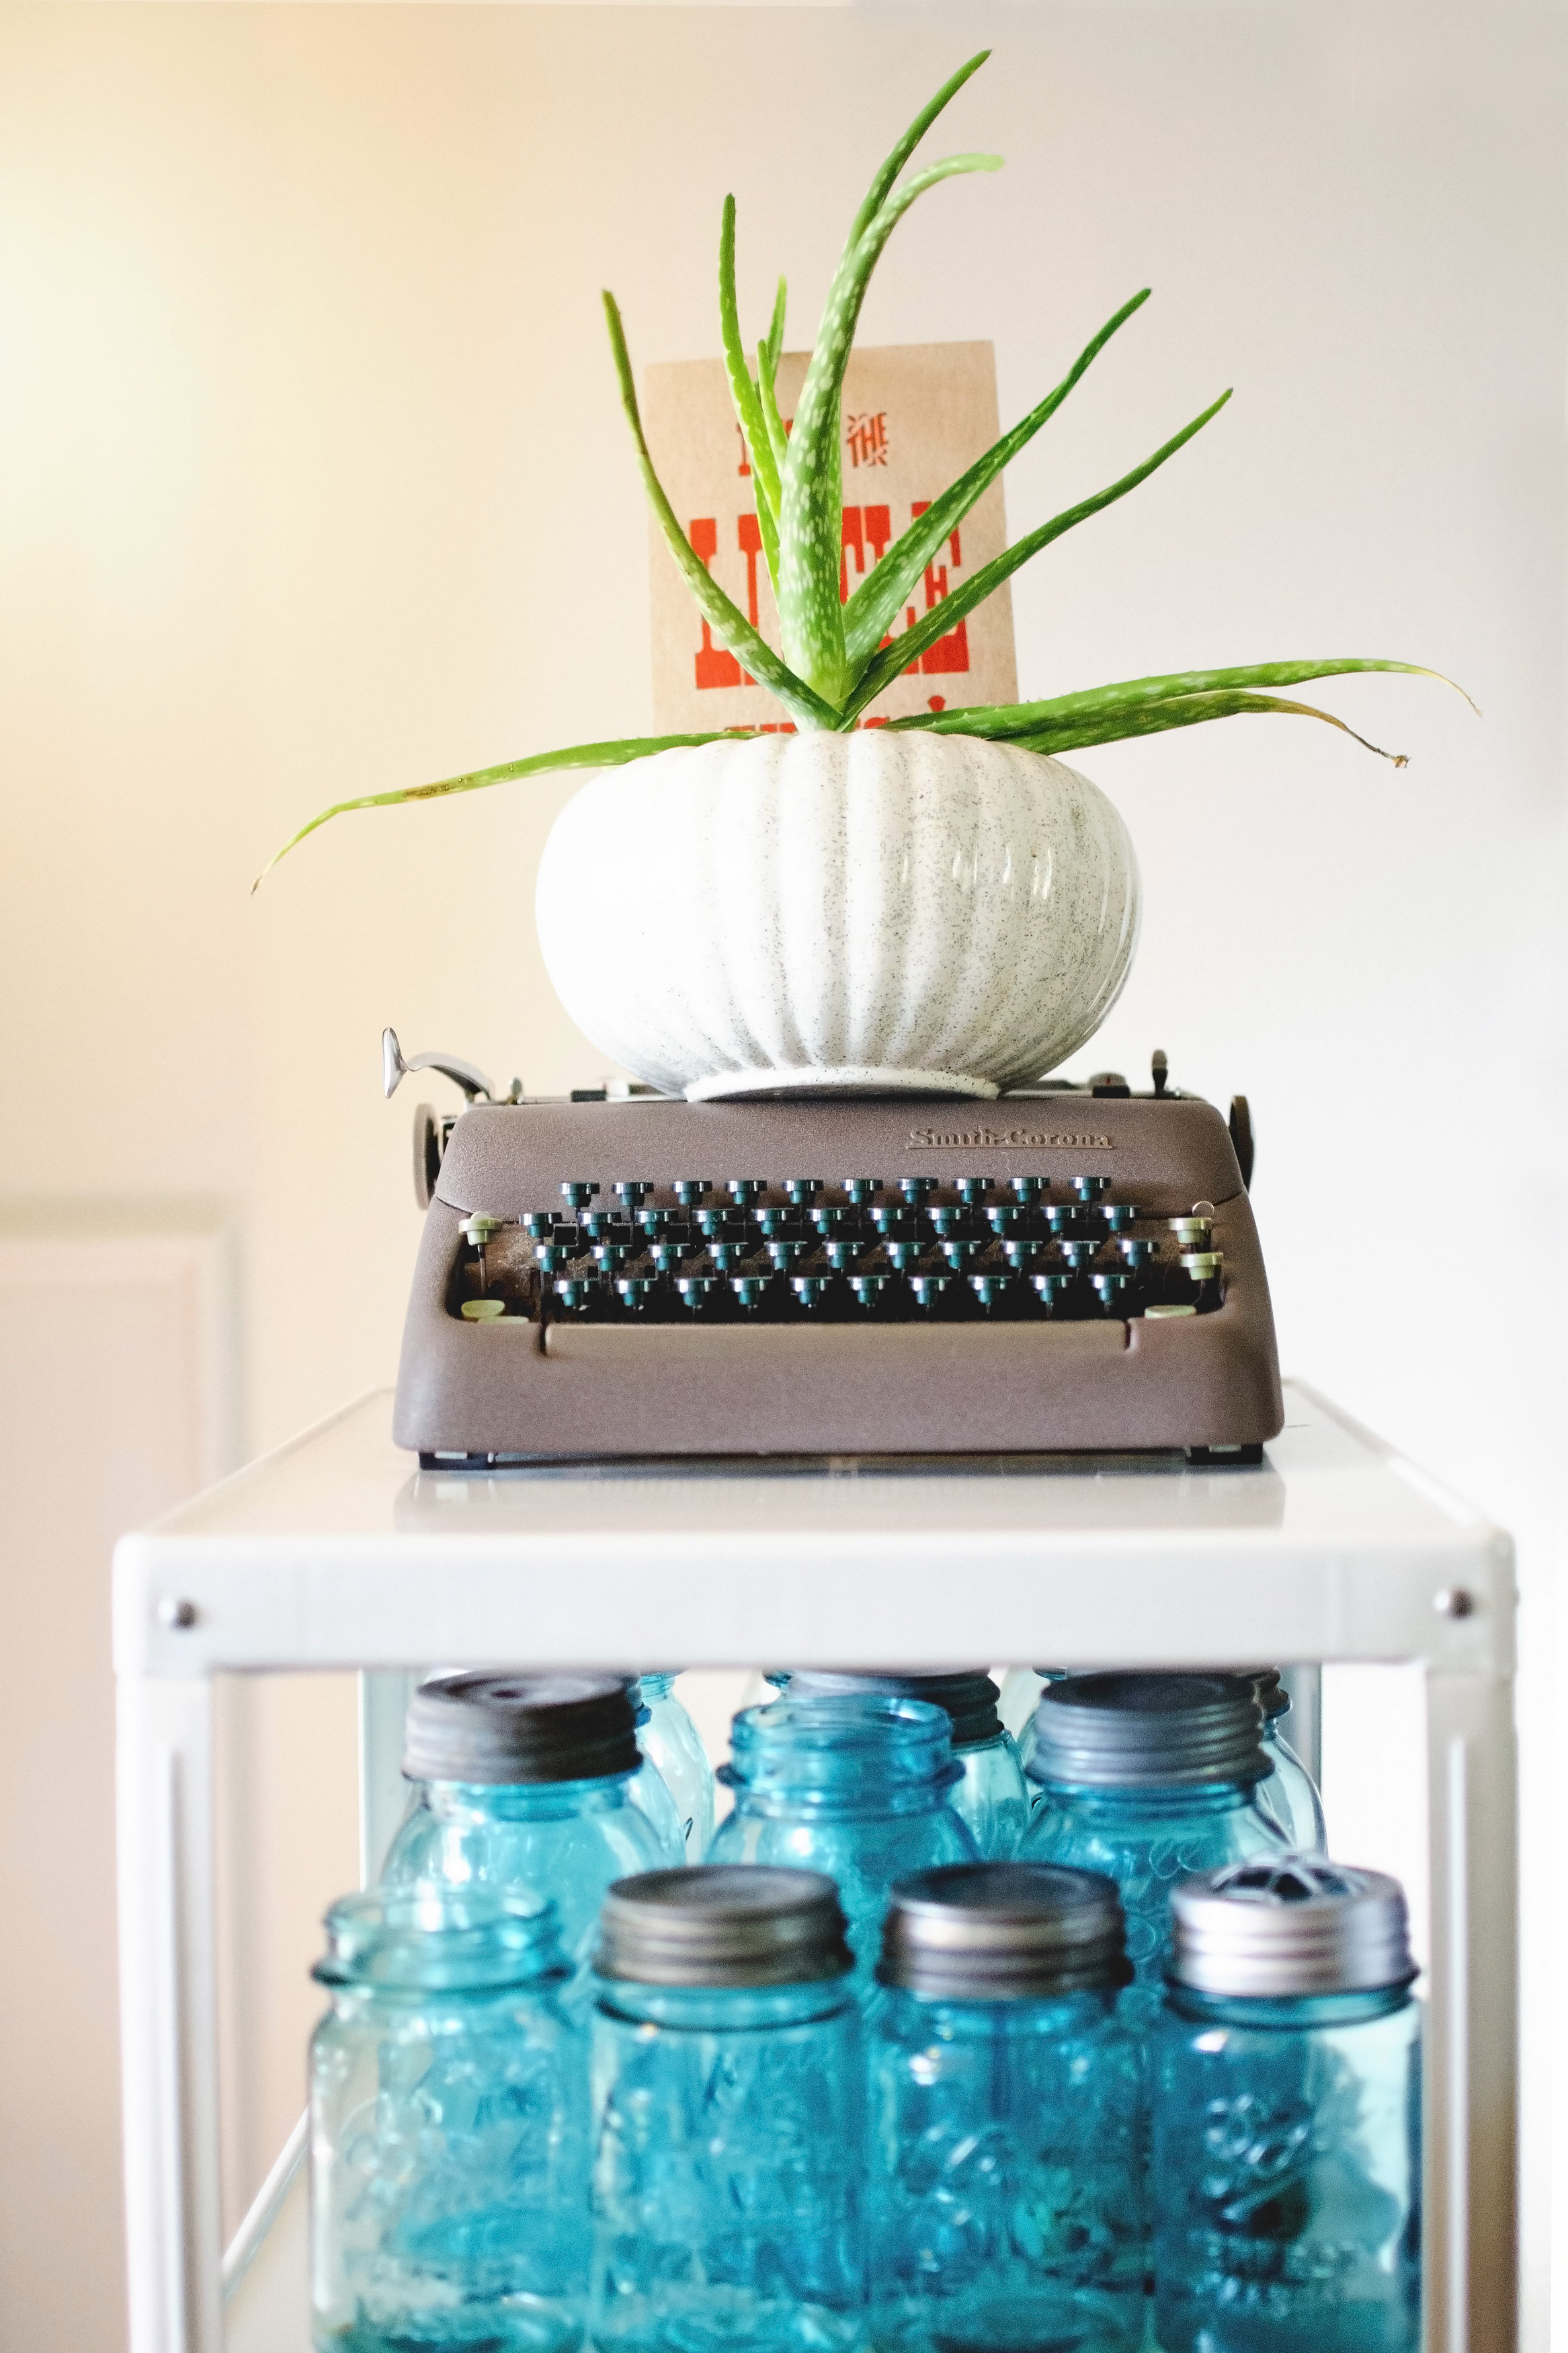 White metal shelving with blue ball jars, a vintage typewriter, and potted plant. H.Prall & Co. | hprallandco.com